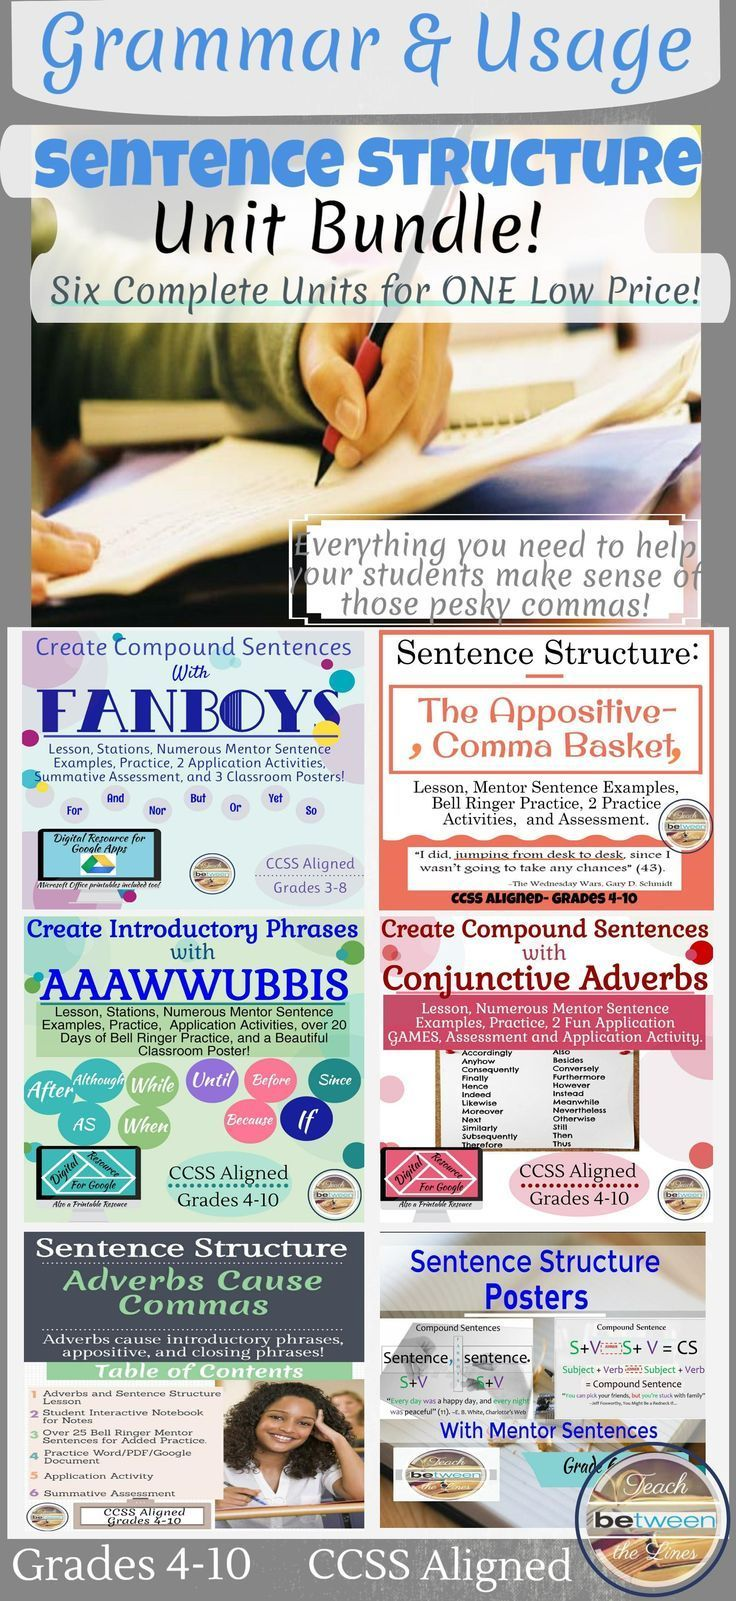 This complete unit bundle includes everything you need to teach sentence structure and comma placement to your students. Each unit will support students in creating: -compound sentences -complex sentences -a variety of introductory phrases to vary sentence beginnings - appositives to vary sentence structure, create interest, create explanations, and a strong writer's voice. - bell ringer practice with all sentence structures to provide support all year long - nine beautiful classroom posters